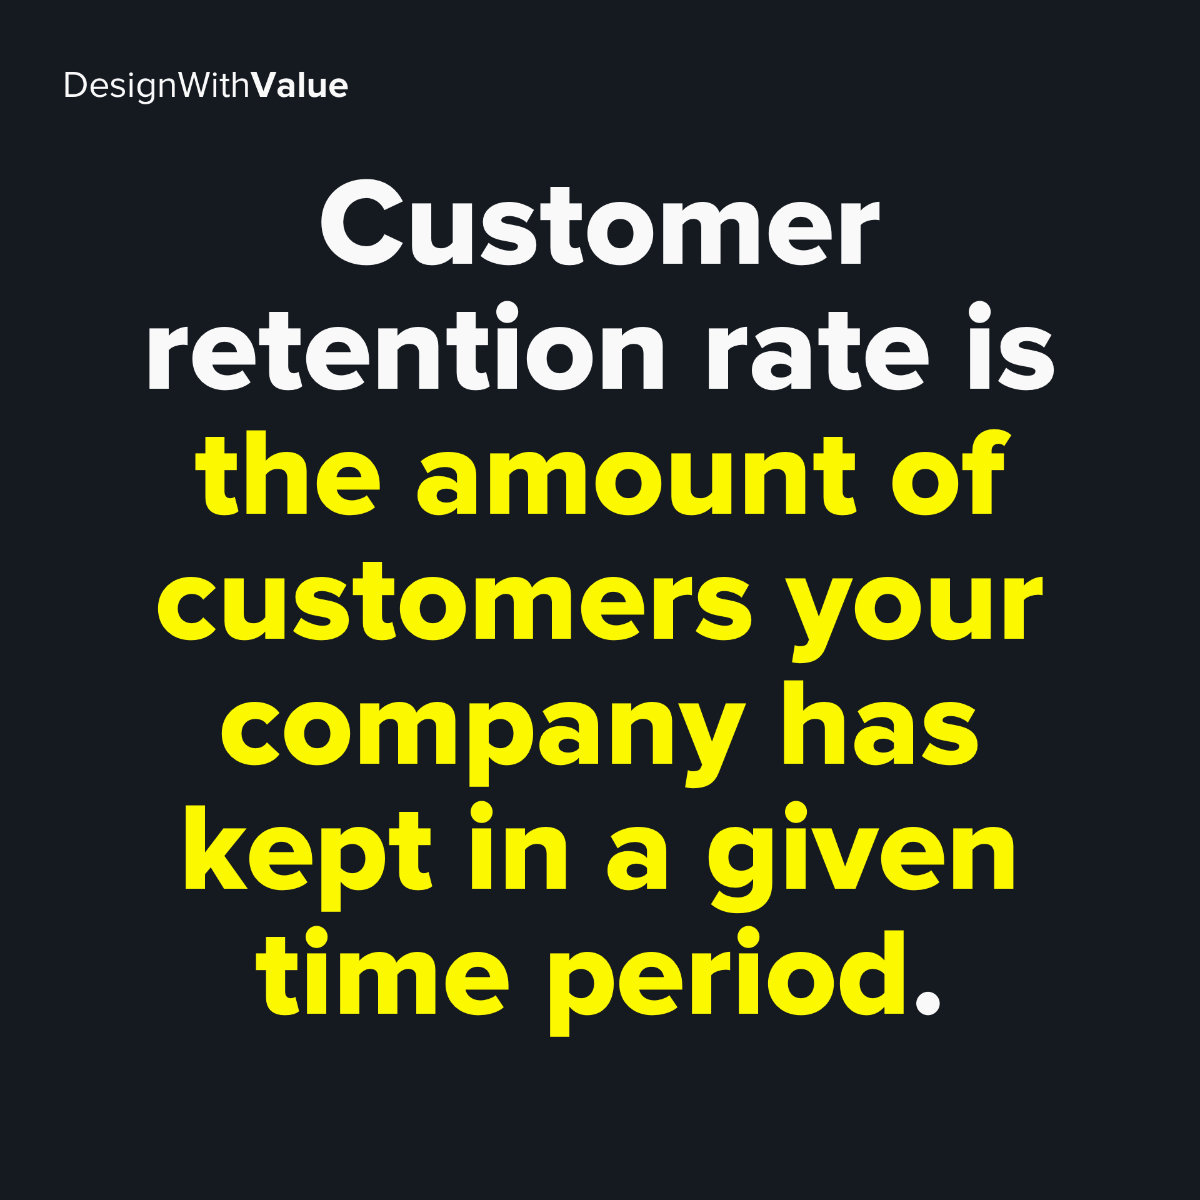 Customer retention rate is the amount of customers your company has kept in a given time period